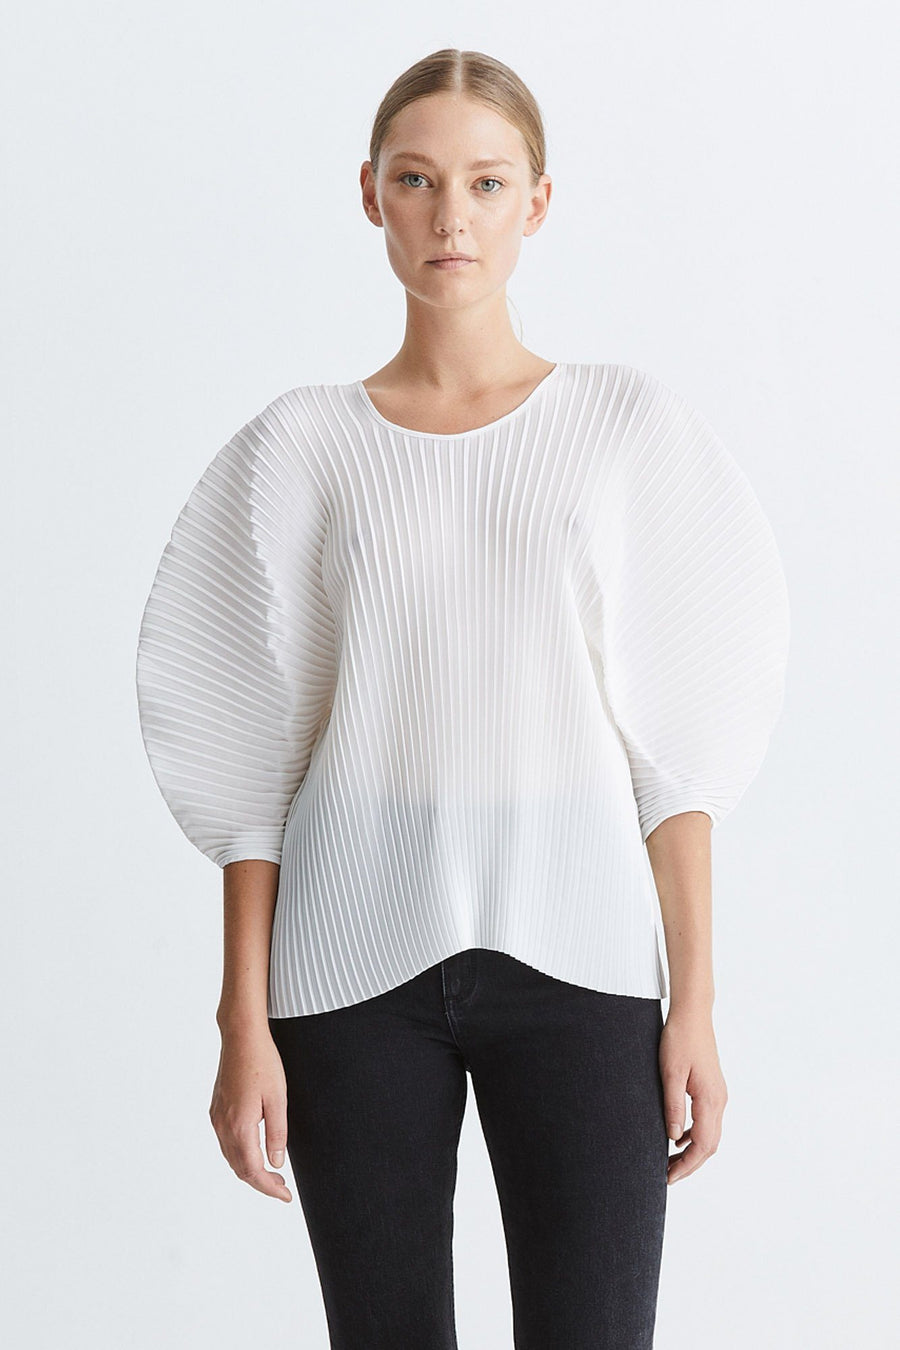 ISE TOP - WHITE Top Stylein